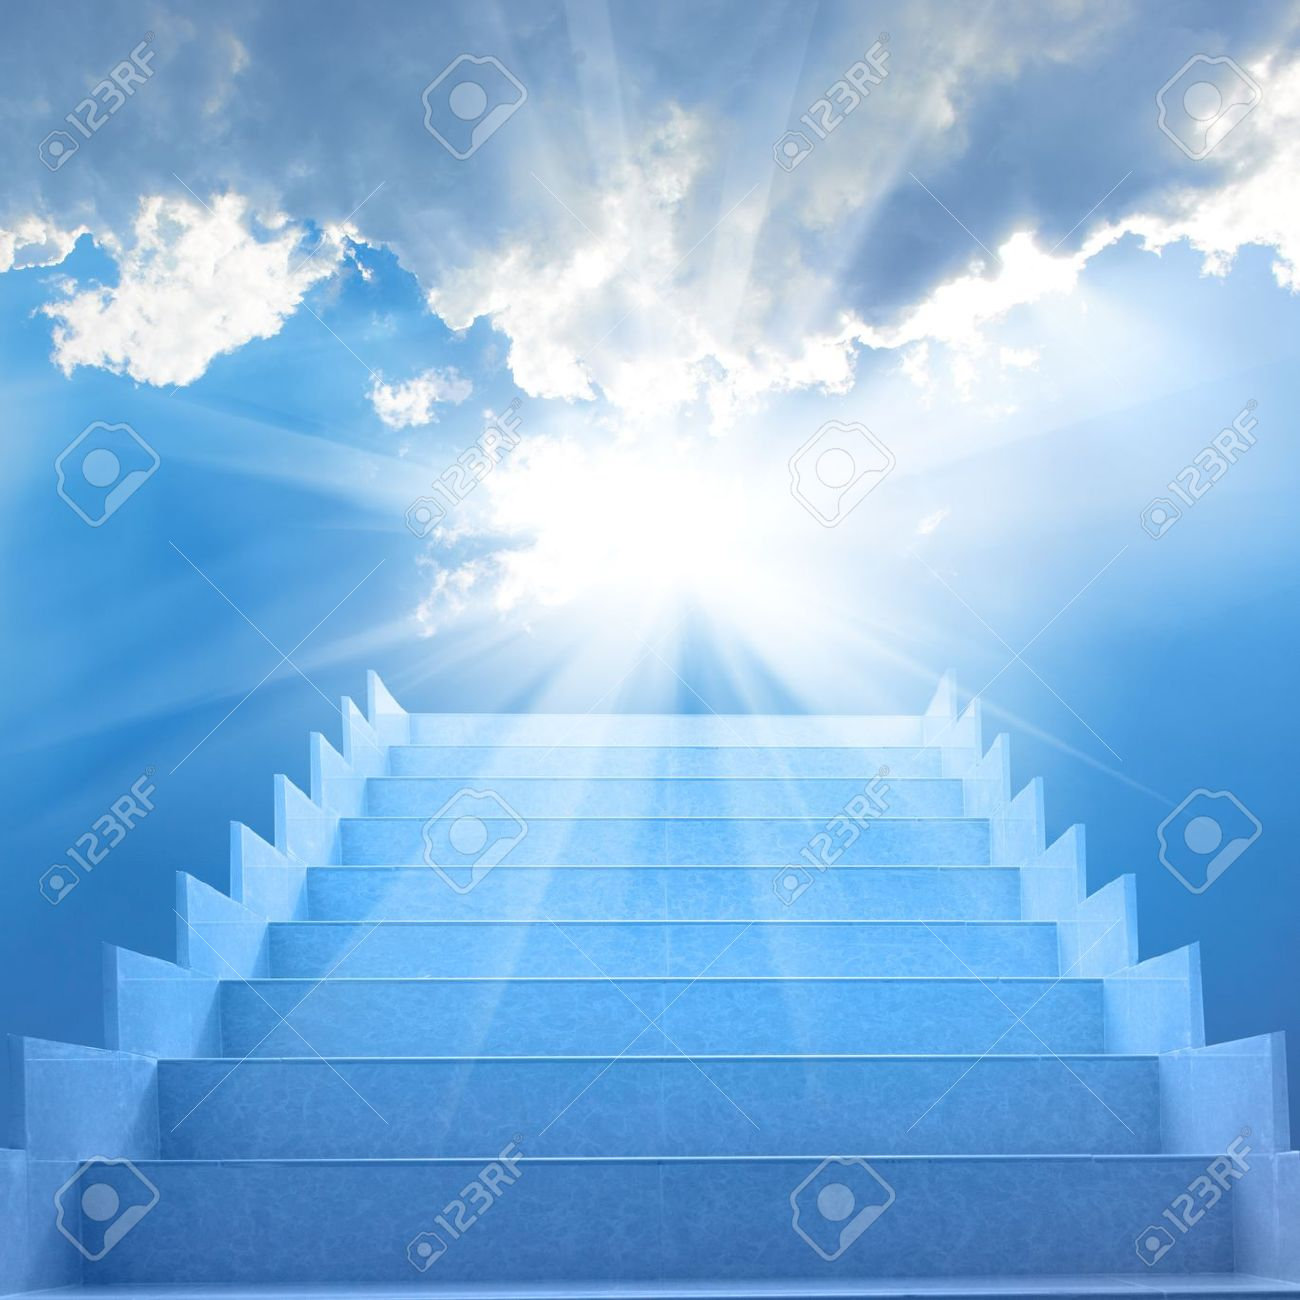 Staircase Free Photo Image Stairs White Clouds Sun Royalty Picture In And With Image And Stock 21883284 Concept Sky